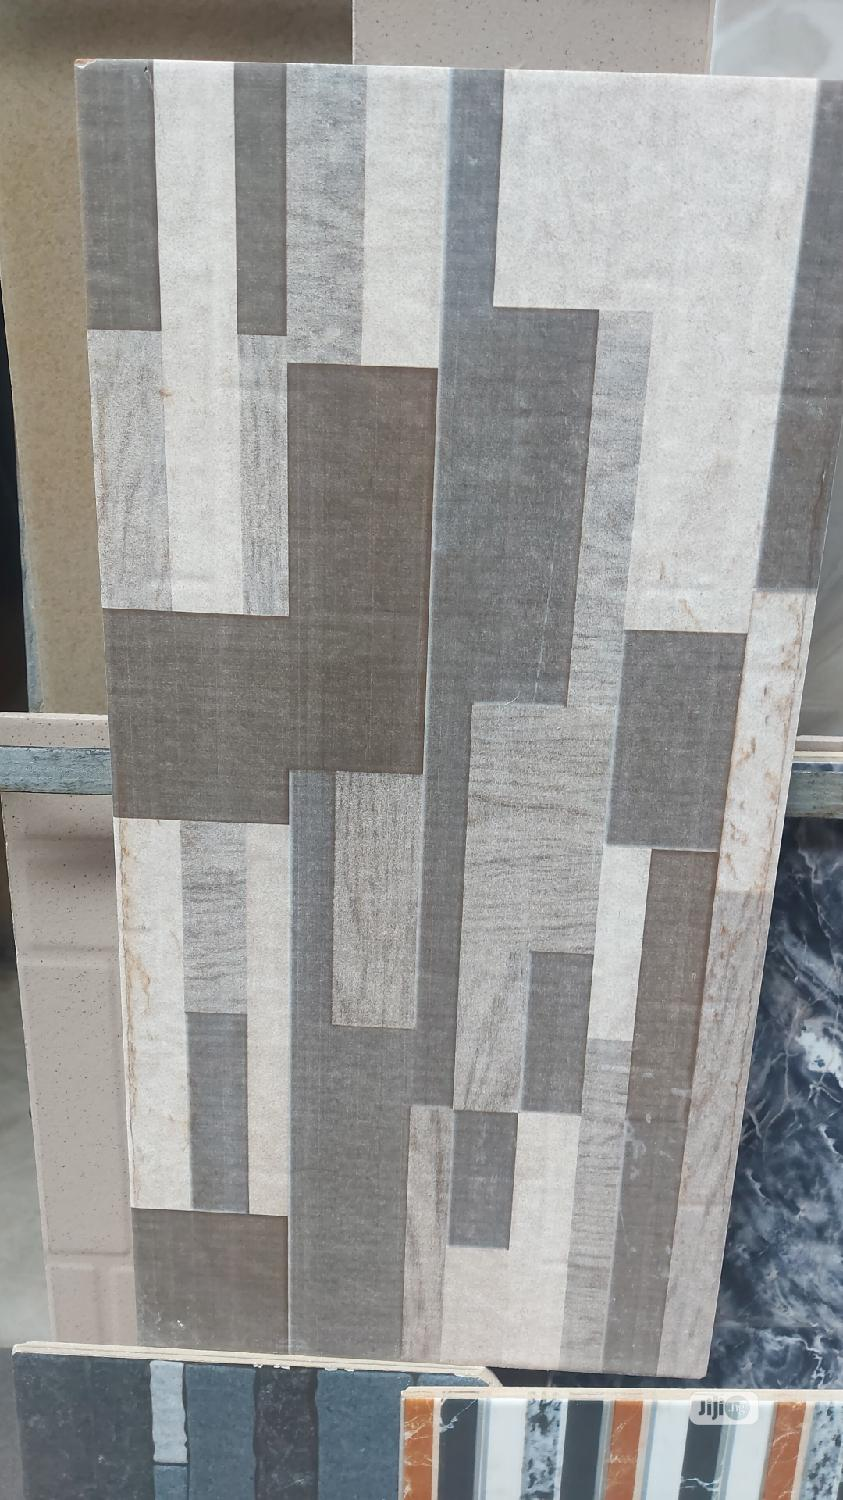 25X50 Crack Wall Tiles | Building Materials for sale in Orile, Lagos State, Nigeria